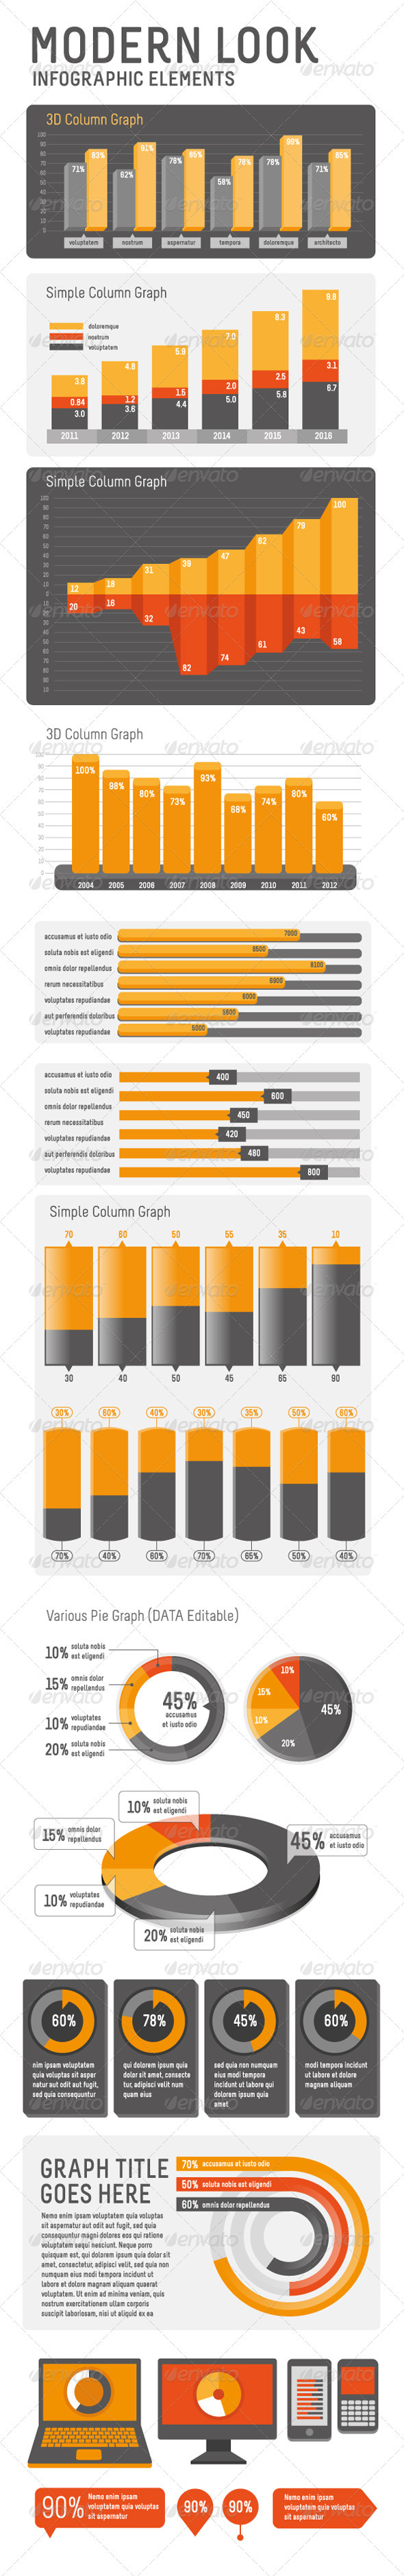 Modern look Infographic Elements - Business Conceptual